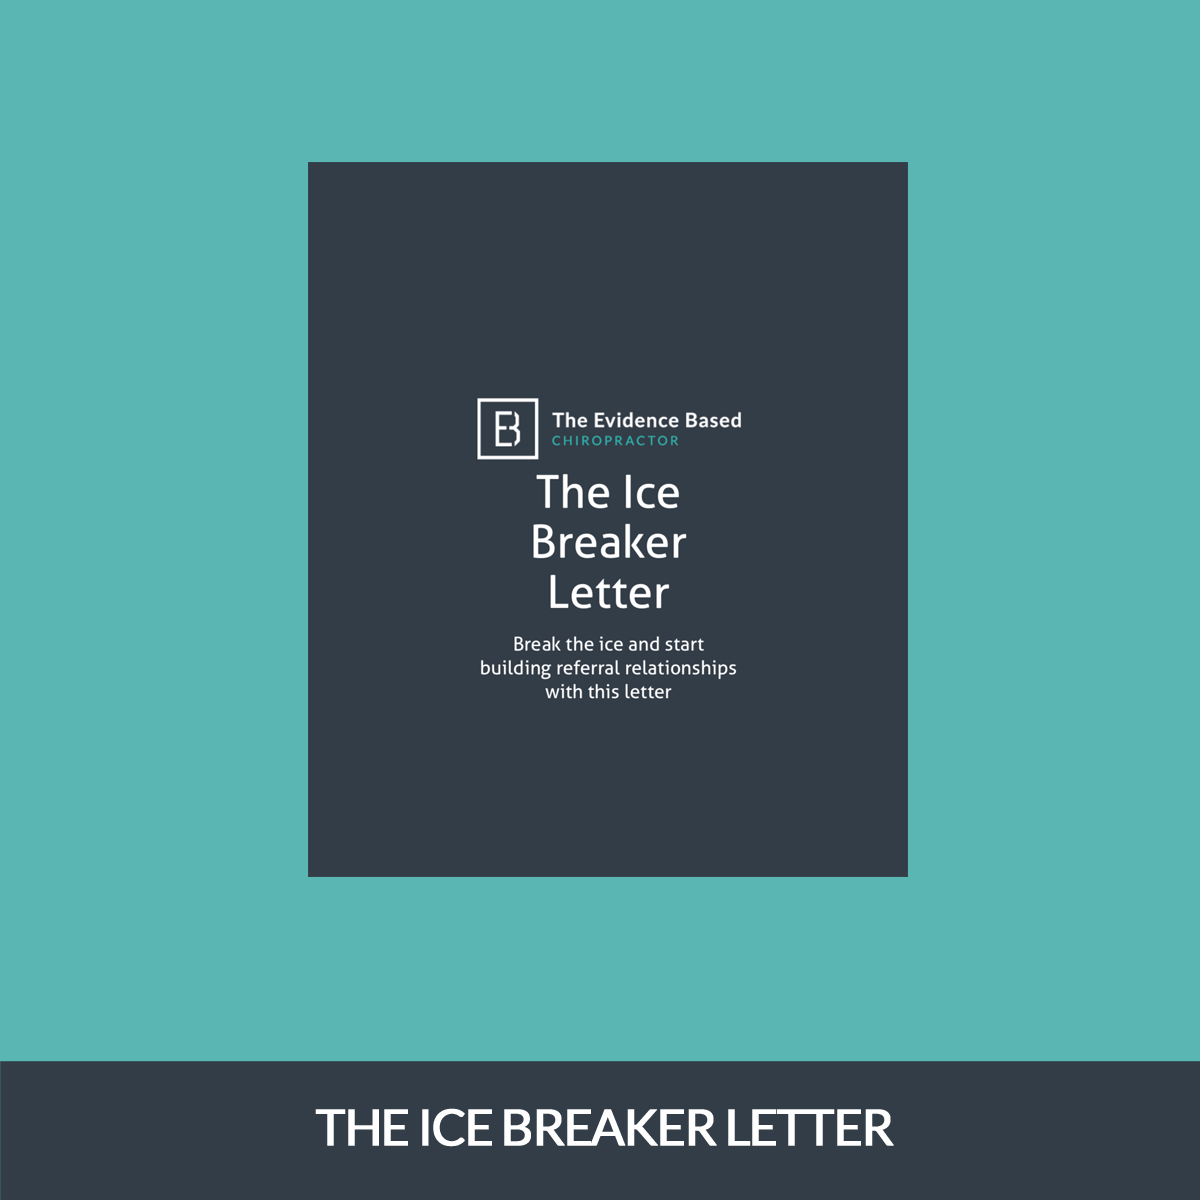 THE ICE BREAKER LETTER-squashed.png